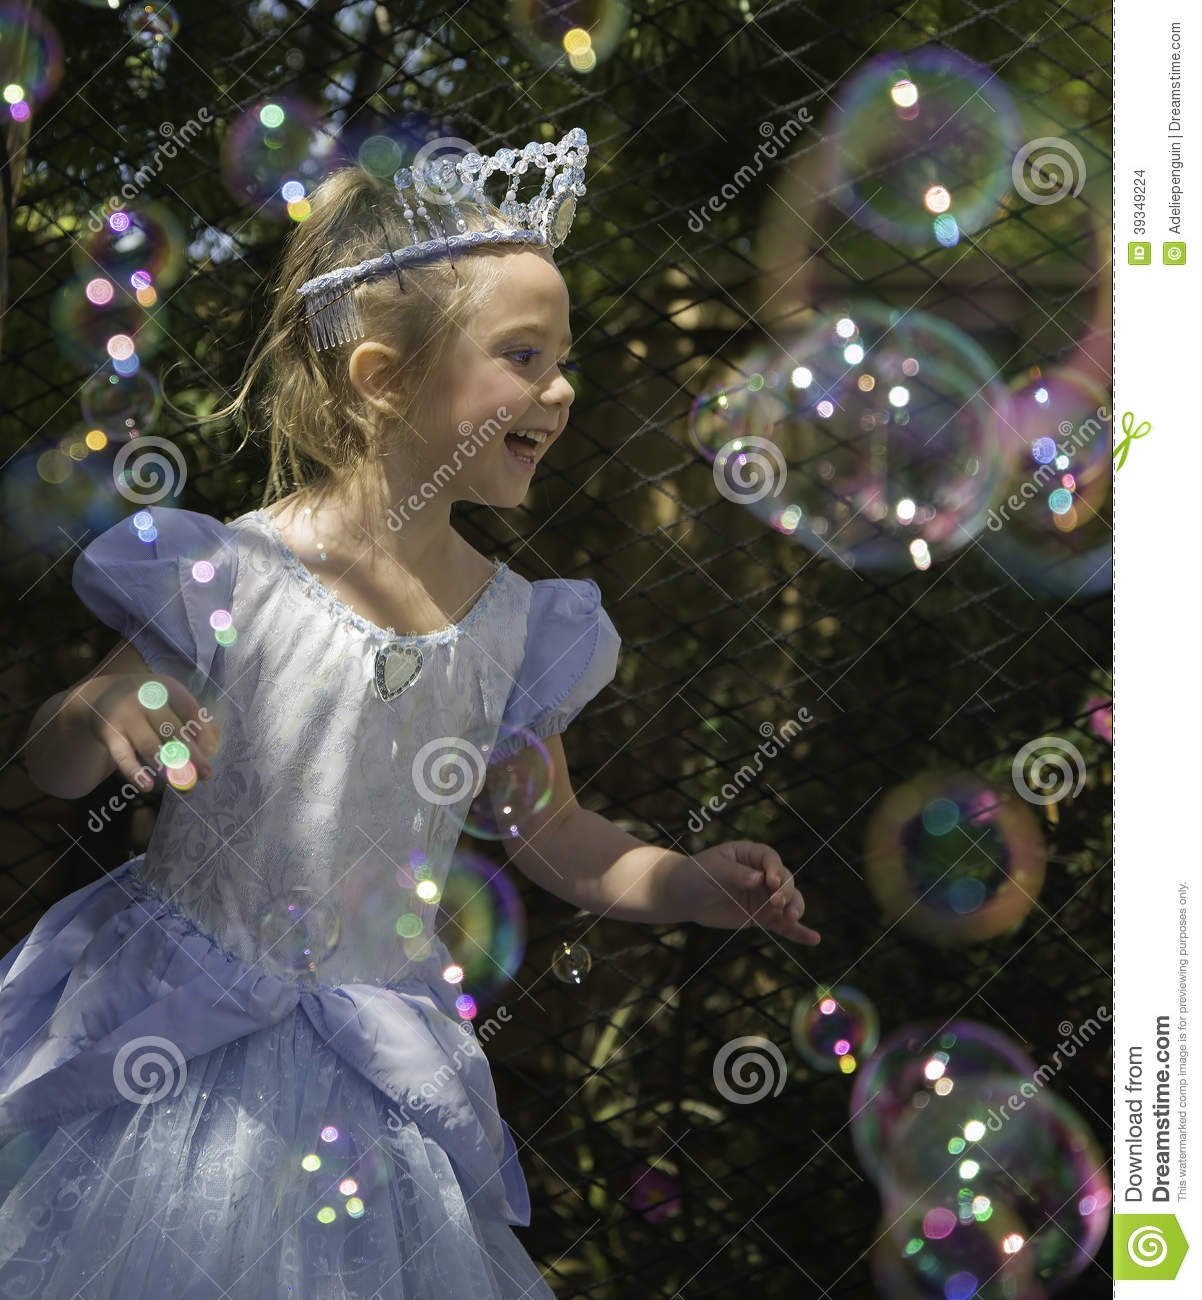 Birthday Girl Princess with Bubbles